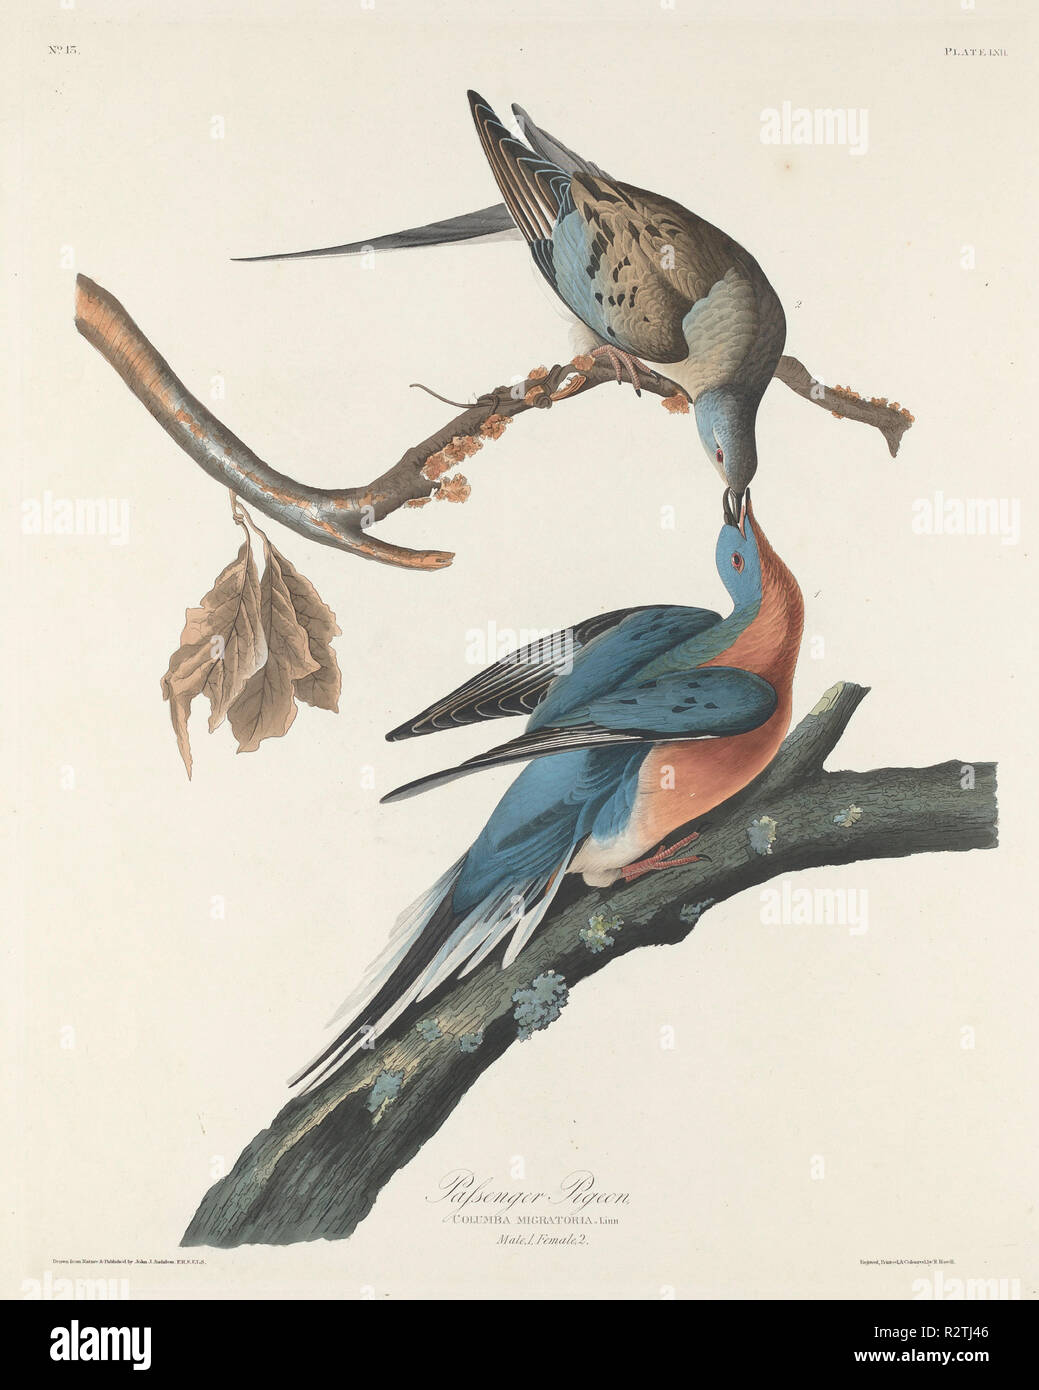 Passenger Pigeon. Dated: 1829. Dimensions: plate: 65.7 x 52.7 cm (25 7/8 x 20 3/4 in.)  sheet: 101 x 68 cm (39 3/4 x 26 3/4 in.). Medium: hand-colored etching and aquatint on Whatman paper. Museum: National Gallery of Art, Washington DC. Author: Robert Havell after John James Audubon. AUDUBON, JOHN JAMES. - Stock Image